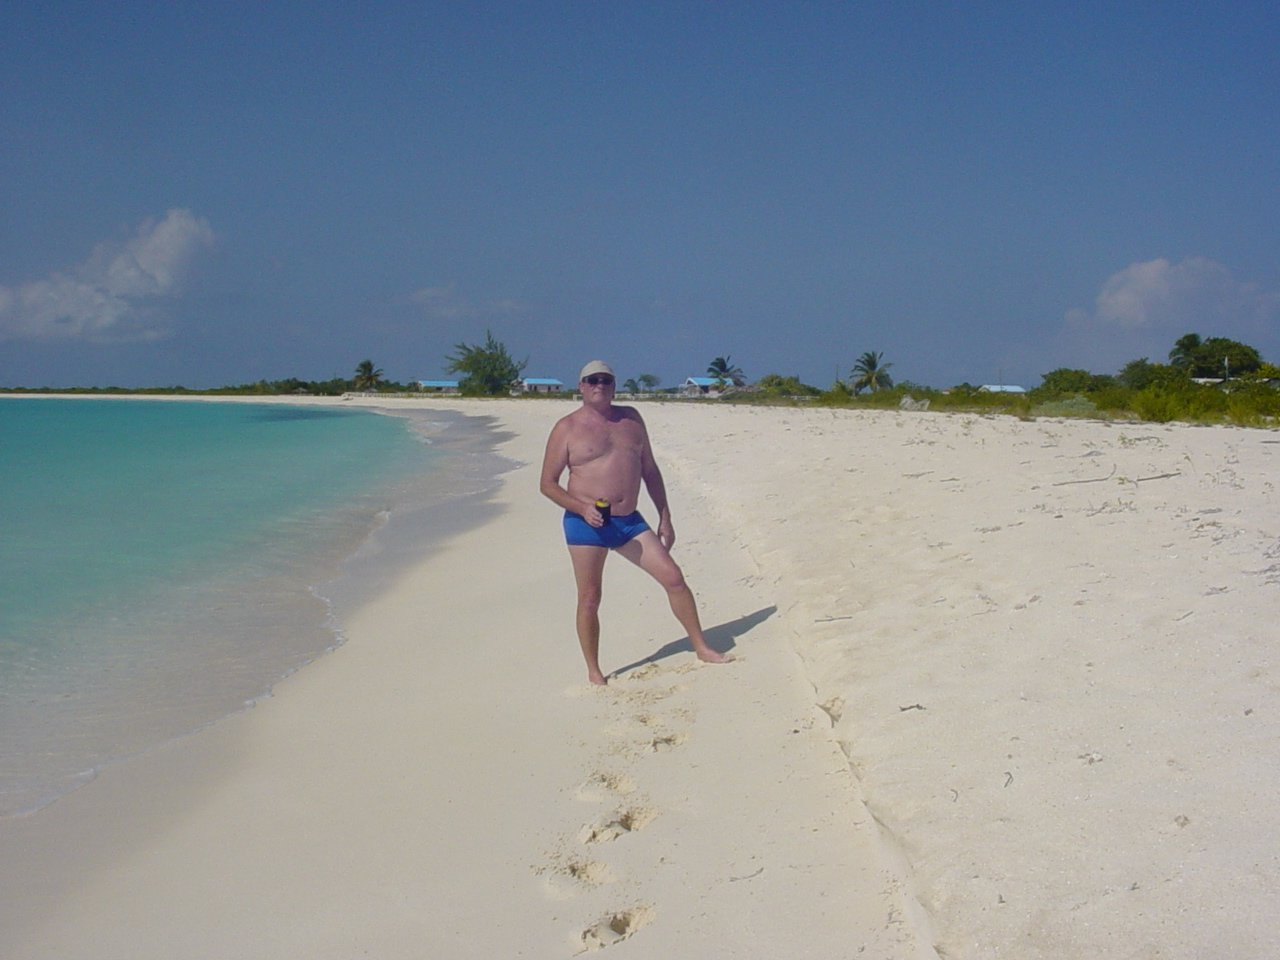 BEST BEACH EVER IN BARBUDA, DIDN'T REALLY NEED THE SUIT!